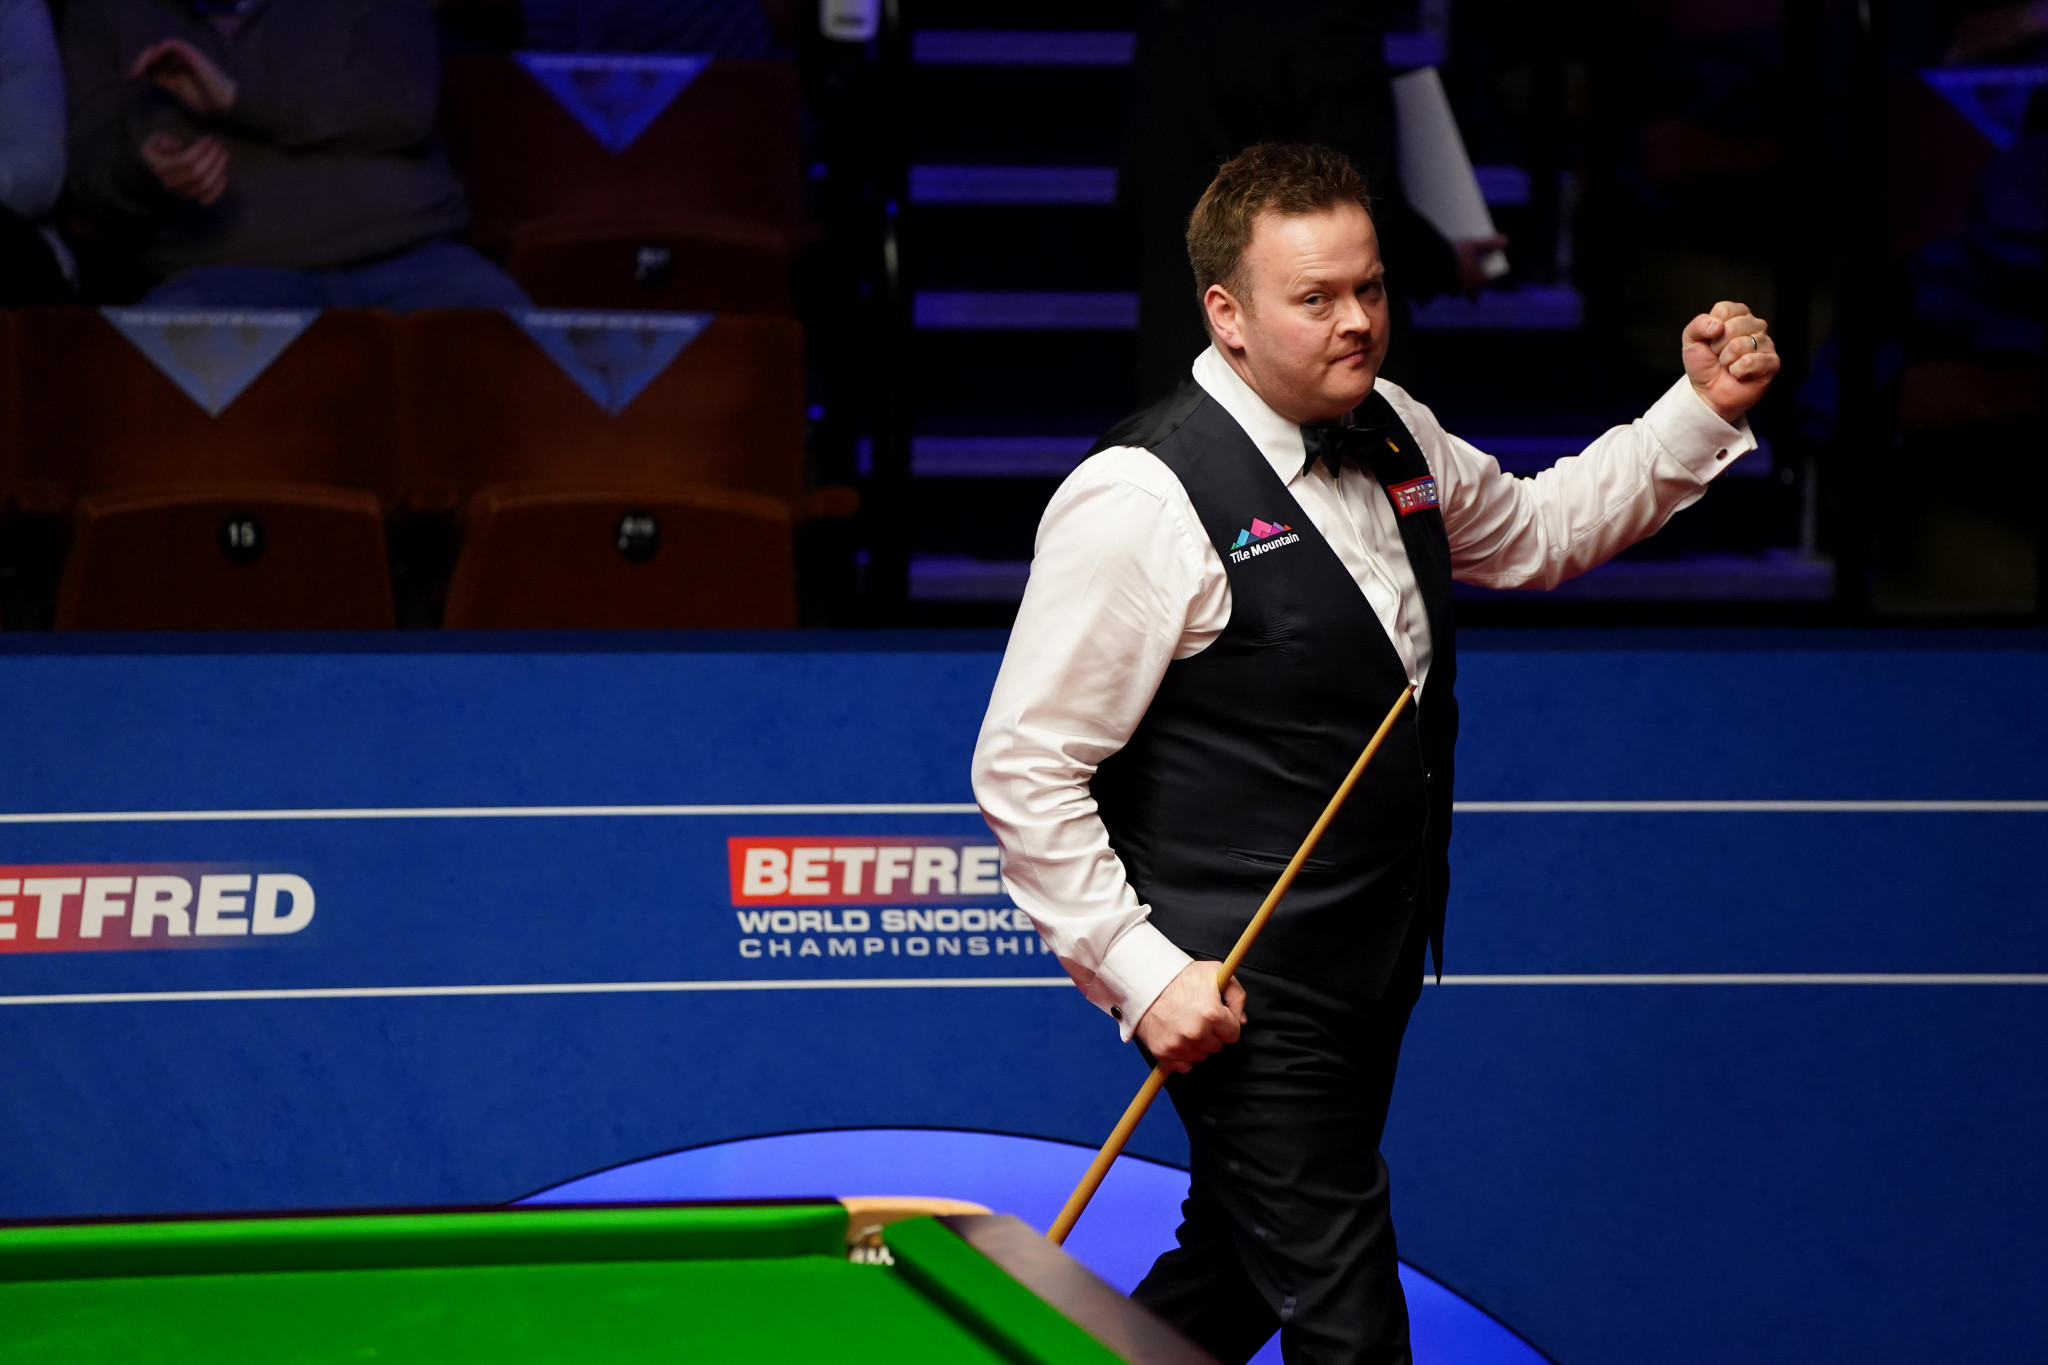 World number one Trump knocked out as Bingham triumphs in decider at World Snooker Championship